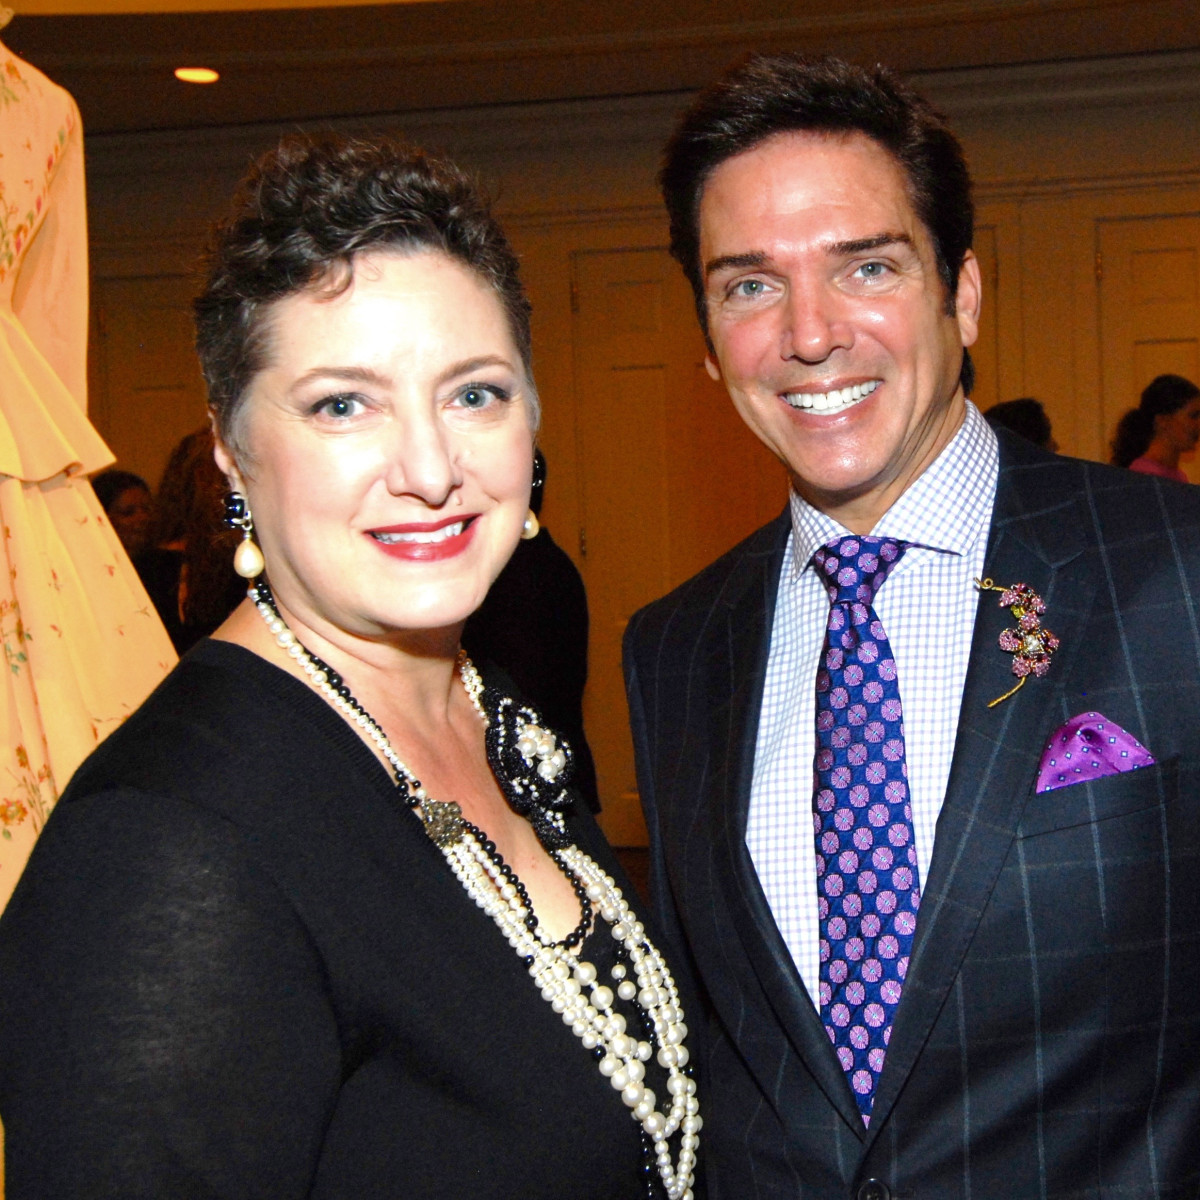 Tamara Klosz Bonar and Lenny Lenny Matuszewski at Salute to Retail Luncheon